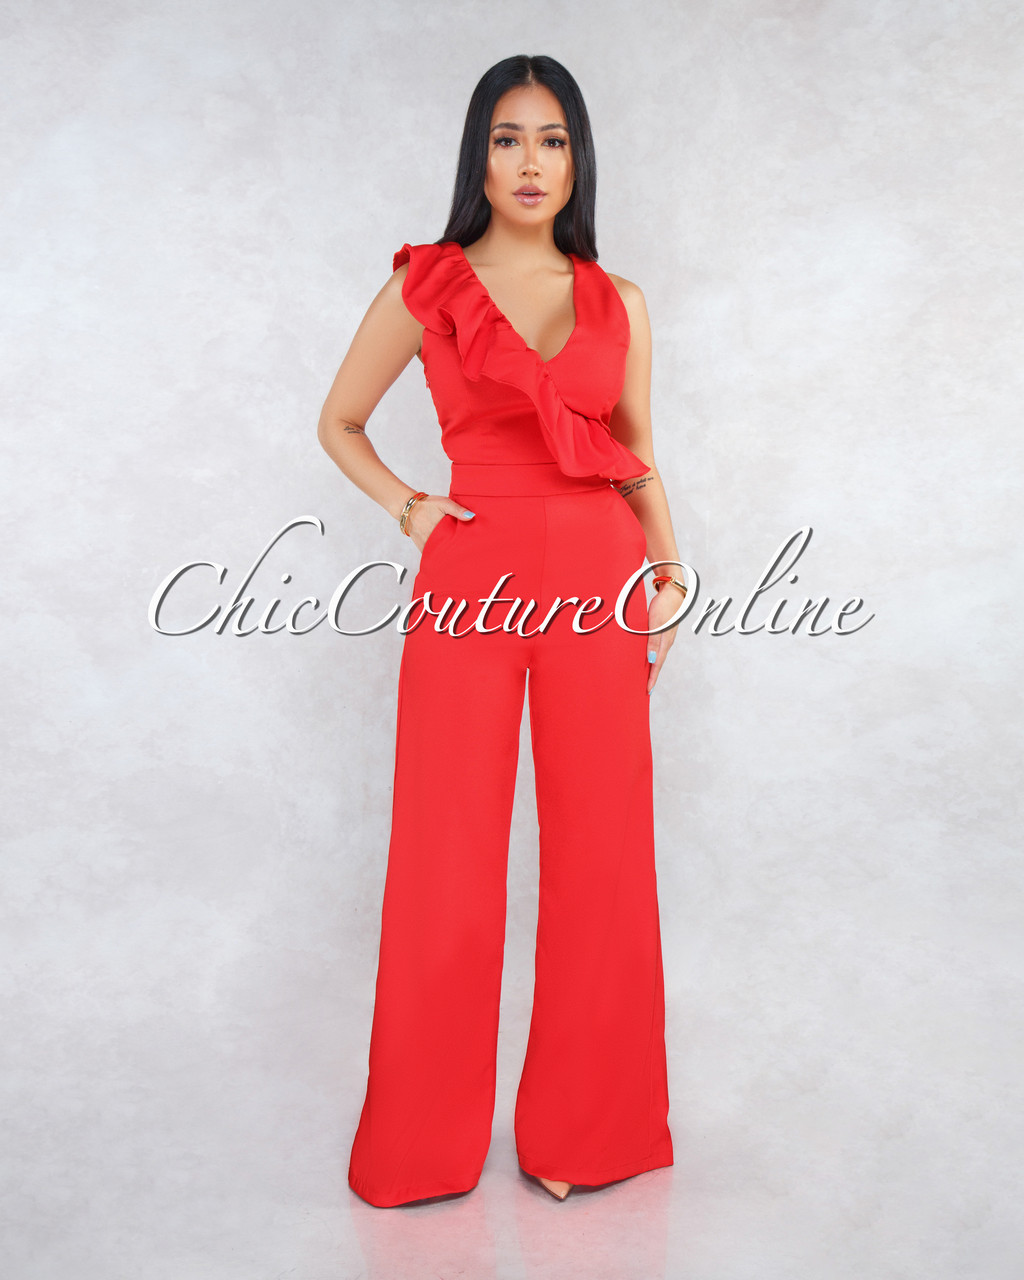 d3a6a96d2cd Dylana Red V-Neck Ruffle Jumpsuit. Price   55.00. Image 1